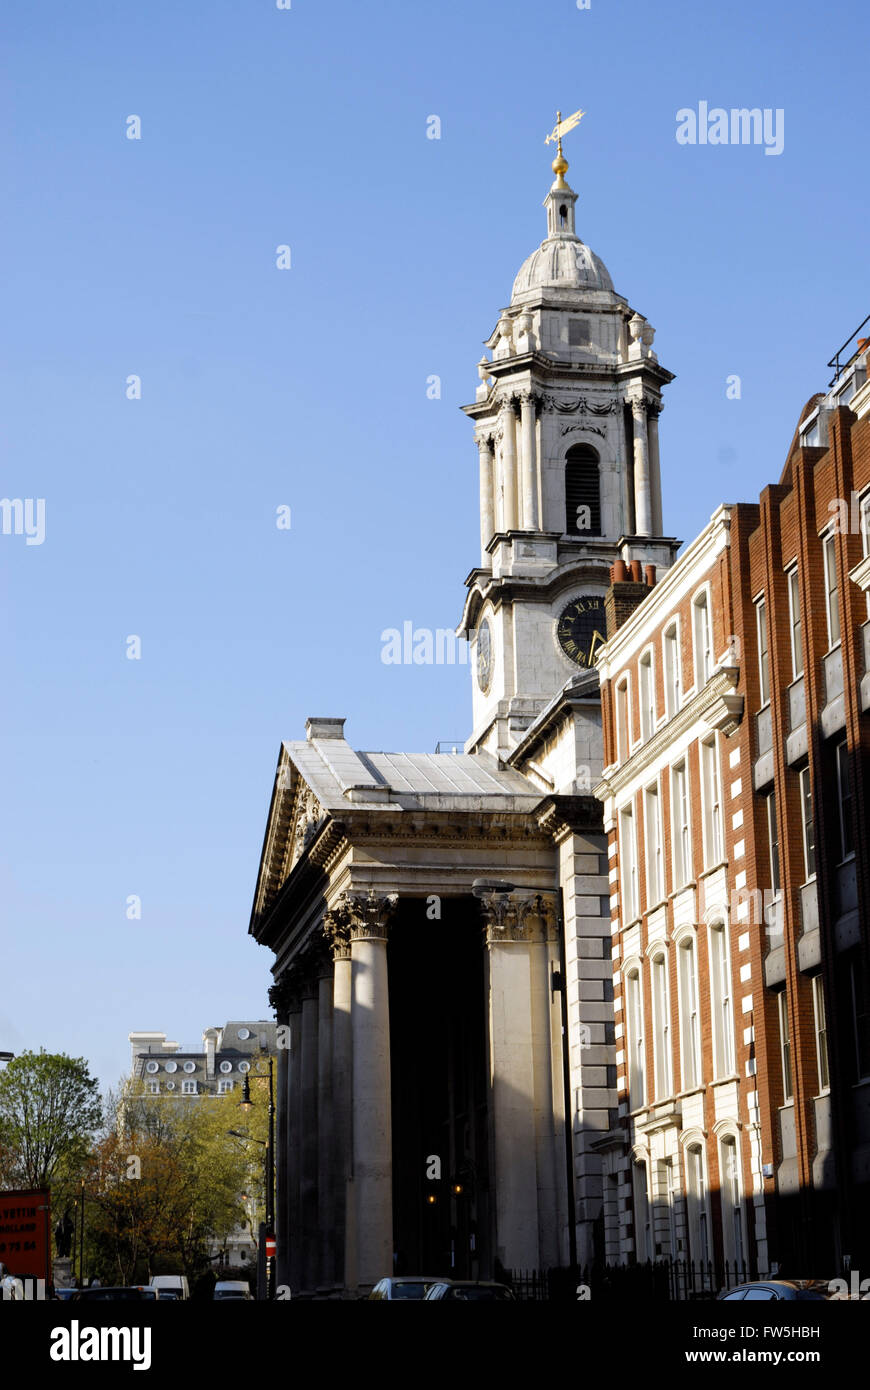 St. George's Church, Hanover Square, Handel's church, English composer, completed 1725, Corinthian columns and bell - Stock Image